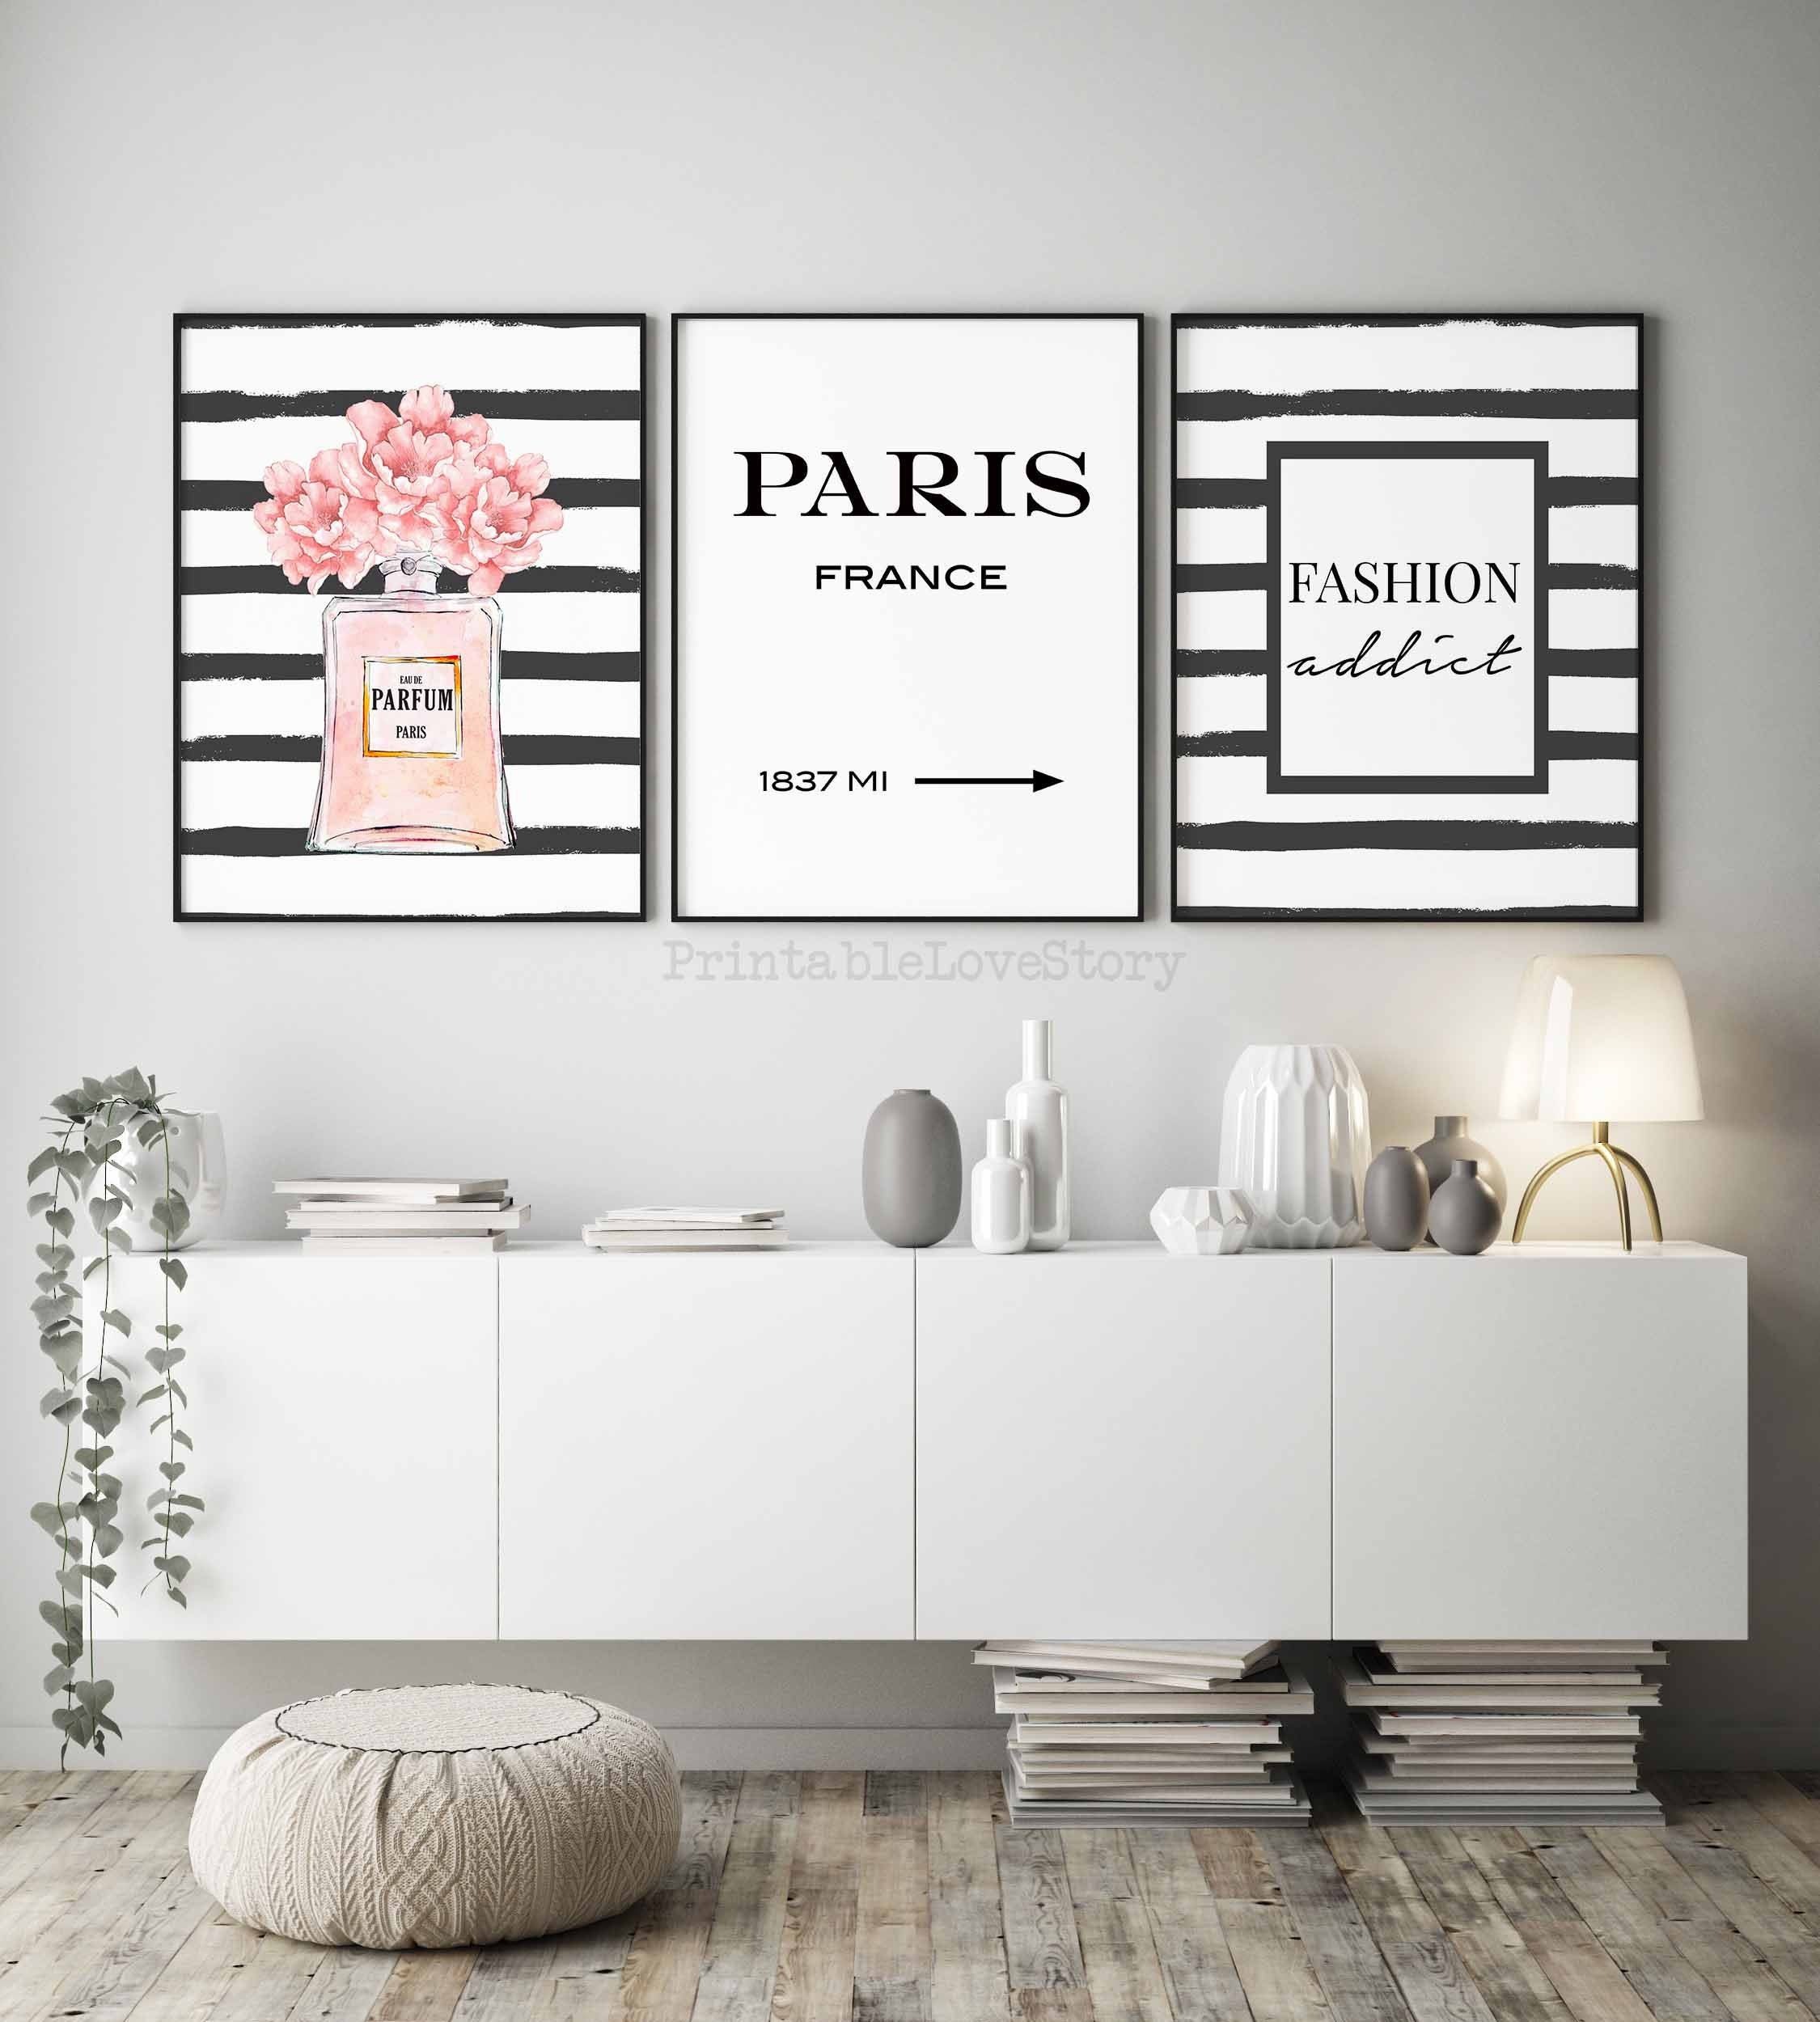 Fashion Wall Artfashion Printsbedroom Womenfashion Black Etsy Fashion Wall Art Canvases Fashion Wall Art Paris Room Decor